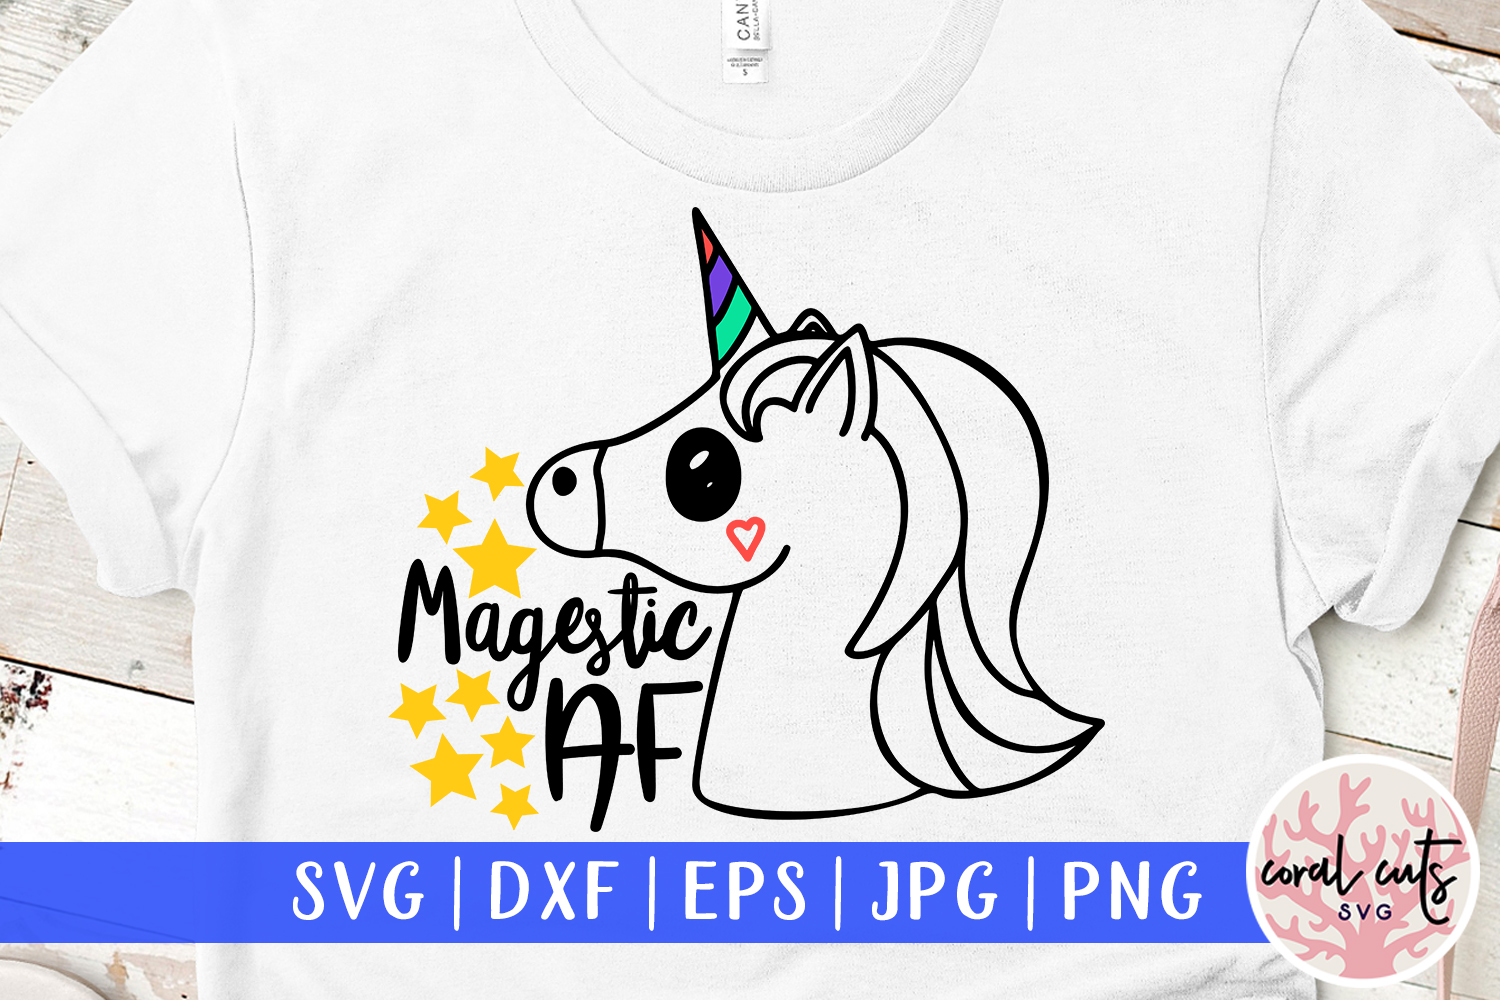 Download Free Majestic Af Graphic By Coralcutssvg Creative Fabrica for Cricut Explore, Silhouette and other cutting machines.